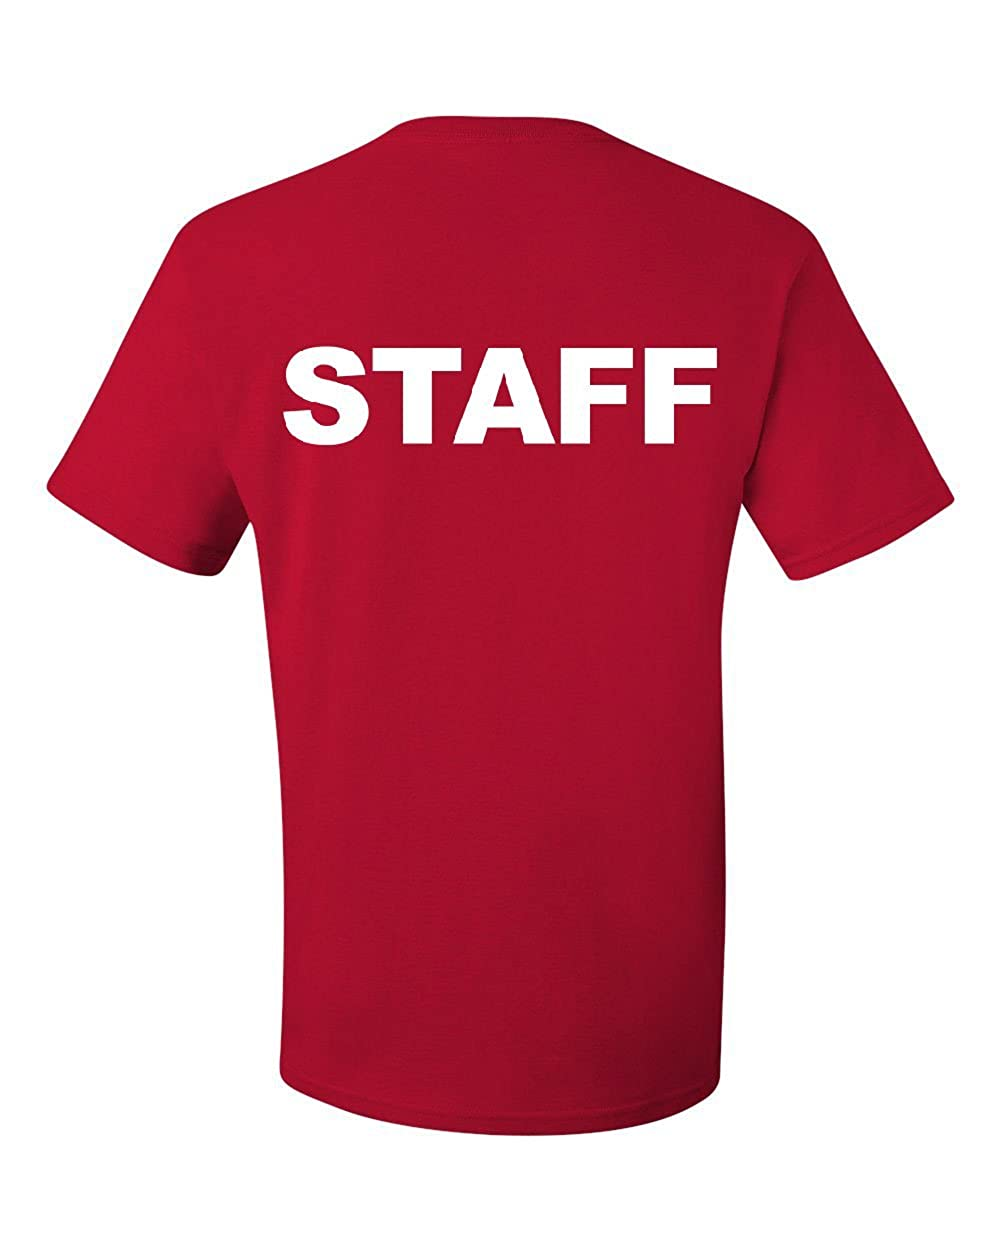 Staff T-Shirt Event Staff Uniform Employee Party Security Tee Shirt 100830-T